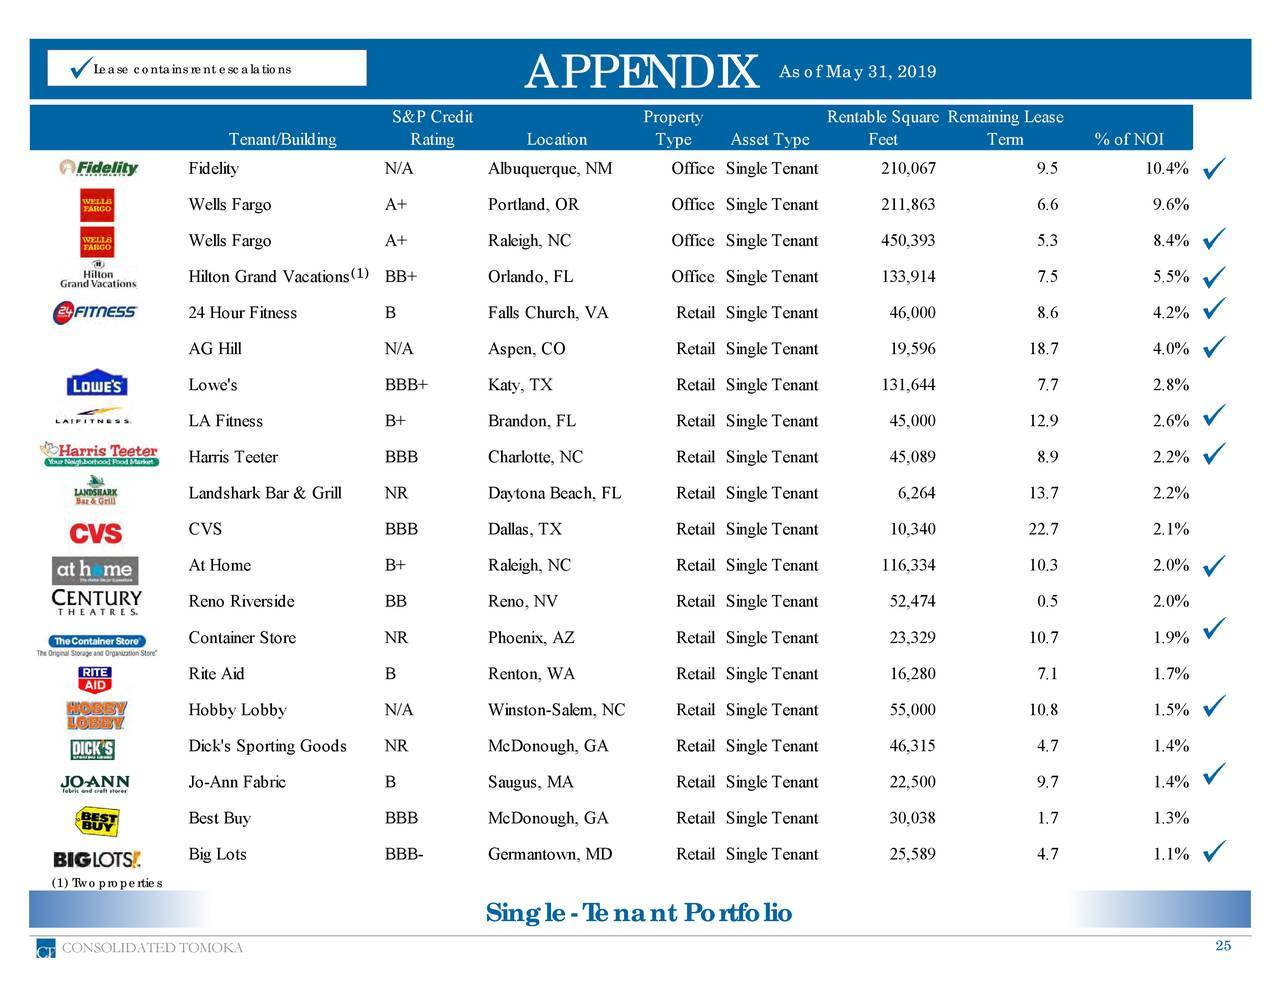 APPENDIX As of May 31, 2019 S&P Credit Property Rentable Square Remaining Lease (C) Tenant/Building Rating Location Type Asset Type Feet Term % of NOI (C) Fidelity N/A Albuquerque, NM Office Single Tenant 210,067 9.5 10.4% Wells Fargo A+ Portland, OR Office Single Tenant 211,863 6.6 9.6% Wells Fargo A+ Raleigh, NC Office Single Tenant 450,393 5.3 8.4% Hilton Grand Vacations1) BB+ Orlando, FL Office Single Tenant 133,914 7.5 5.5% 24 Hour Fitness B Falls Church, VA Retail Single Tenant 46,000 8.6 4.2% AG Hill N/A Aspen, CO Retail Single Tenant 19,596 18.7 4.0% Lowe's BBB+ Katy, TX Retail Single Tenant 131,644 7.7 2.8% LA Fitness B+ Brandon, FL Retail Single Tenant 45,000 12.9 2.6% Harris Teeter BBB Charlotte, NC Retail Single Tenant 45,089 8.9 2.2% Landshark Bar & Grill NR Daytona Beach, FL Retail Single Tenant 6,264 13.7 2.2% CVS BBB Dallas, TX Retail Single Tenant 10,340 22.7 2.1% At Home B+ Raleigh, NC Retail Single Tenant 116,334 10.3 2.0% Reno Riverside BB Reno, NV Retail Single Tenant 52,474 0.5 2.0% Container Store NR Phoenix, AZ Retail Single Tenant 23,329 10.7 1.9% Rite Aid B Renton, WA Retail Single Tenant 16,280 7.1 1.7% Hobby Lobby N/A Winston-Salem, NC Retail Single Tenant 55,000 10.8 1.5% Dick's Sporting Goods NR McDonough, GA Retail Single Tenant 46,315 4.7 1.4% Jo-Ann Fabric B Saugus, MA Retail Single Tenant 22,500 9.7 1.4% Best Buy BBB McDonough, GA Retail Single Tenant 30,038 1.7 1.3% Big Lots BBB- Germantown, MD Retail Single Tenant 25,589 4.7 1.1% (1) Twoproperties Single-Tenant Portfolio CONSOLIDATED TOMOKA 25